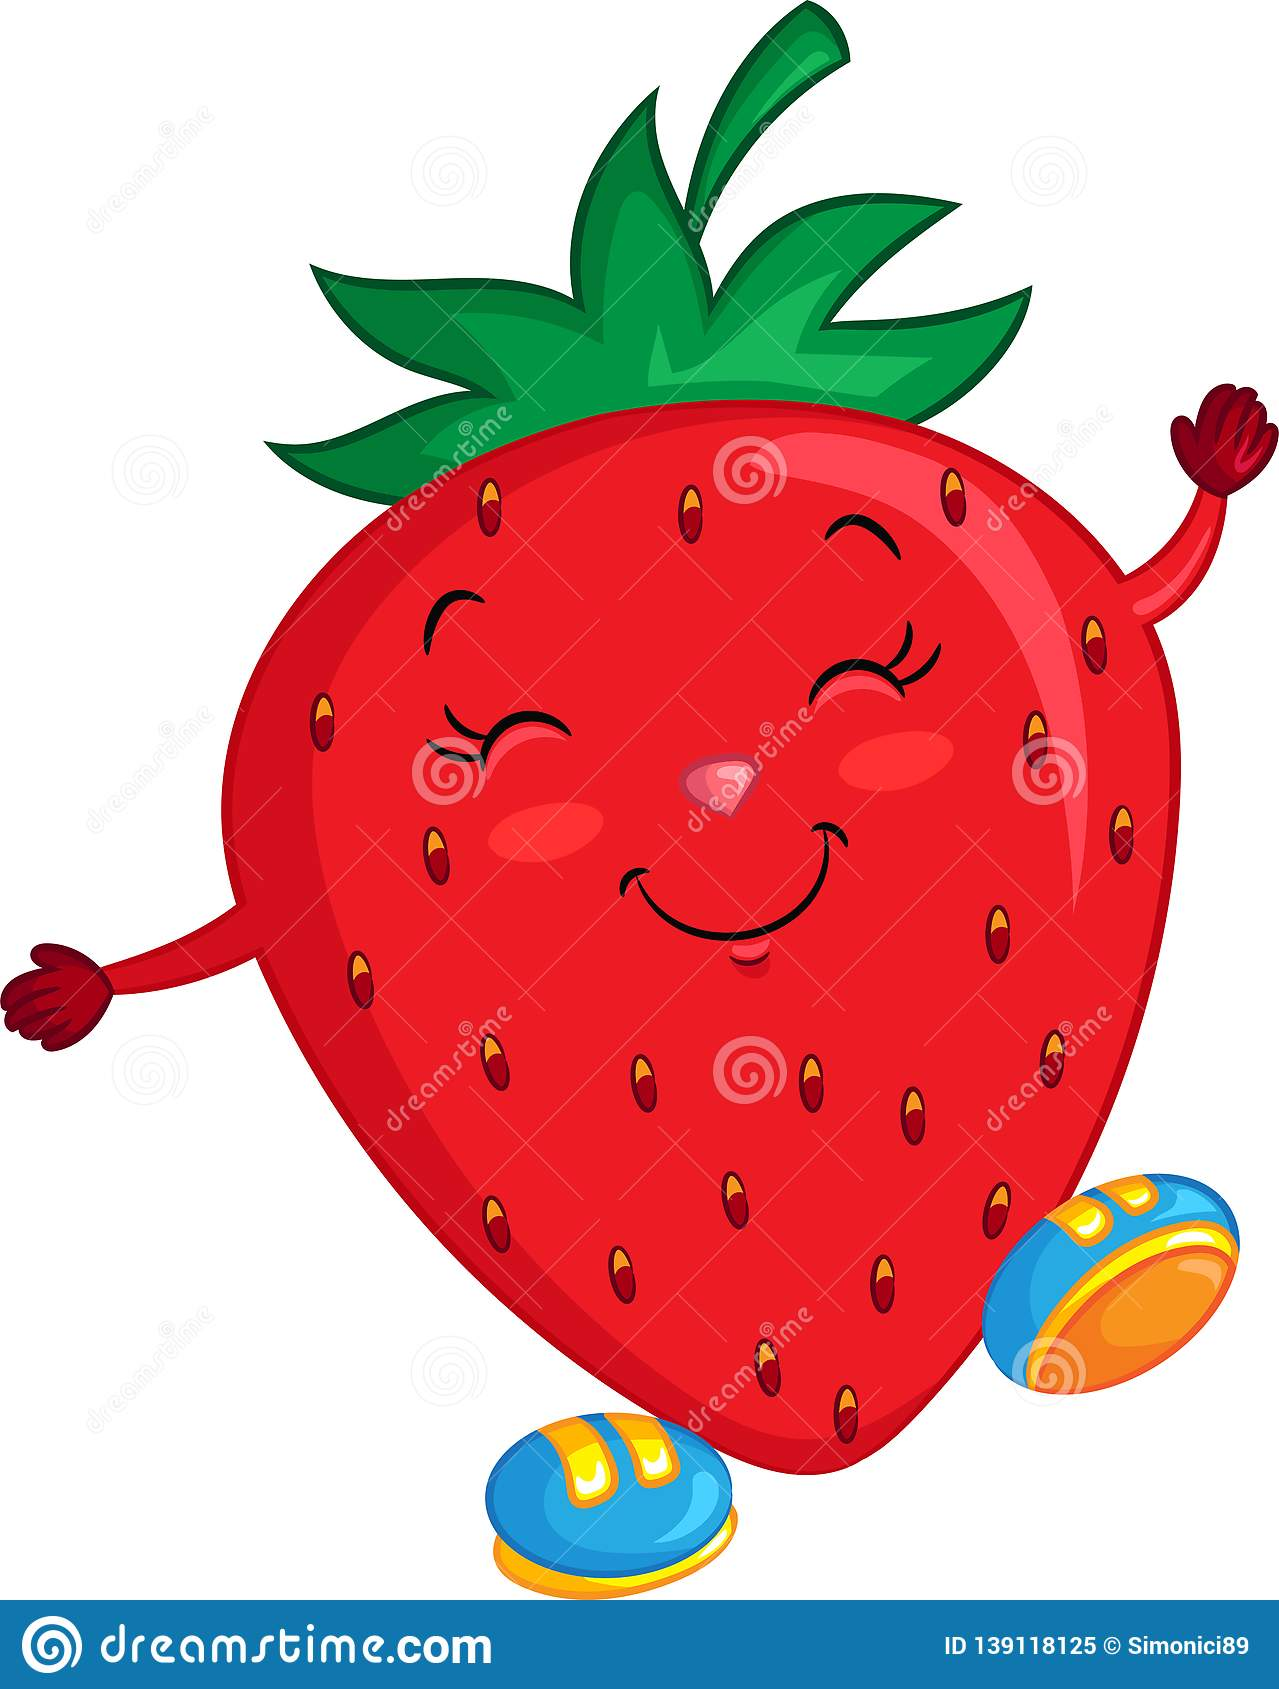 Strawberry Drawing Cute : strawberry, drawing, Adorable, Color, Kawaii, Drawing, Little, Strawberry,, Happy,, Shoes,, Children`s, Stock, Vector, Illustration, Adorable,, Beautifully:, 139118125